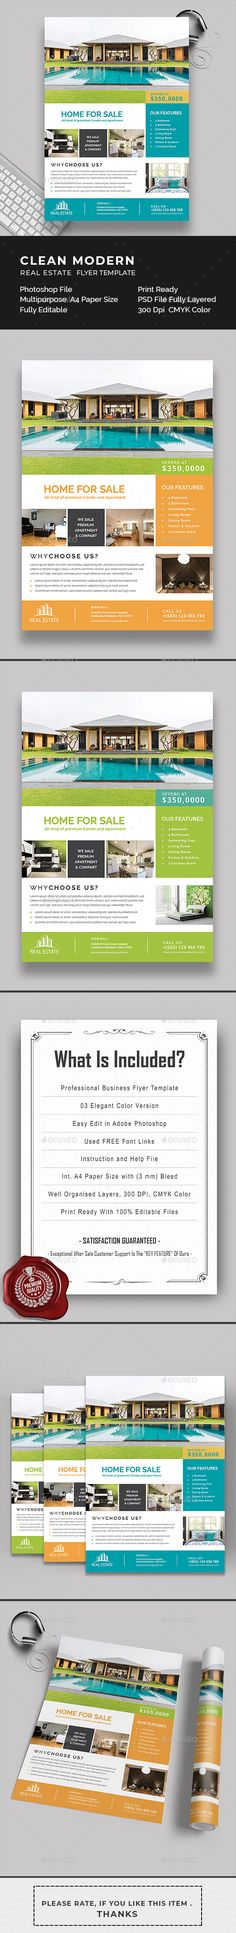 Clean, Elegant & Modern Real Estate & Property Flyer Template An elegant and highly versatile real e Real Estate Icons, Real Estate Flyers, Real Estate Logo, Real Estate Templates, Real Estate Flyer Template, Magazine Advert, Finance Blog, Text Features, Property Development